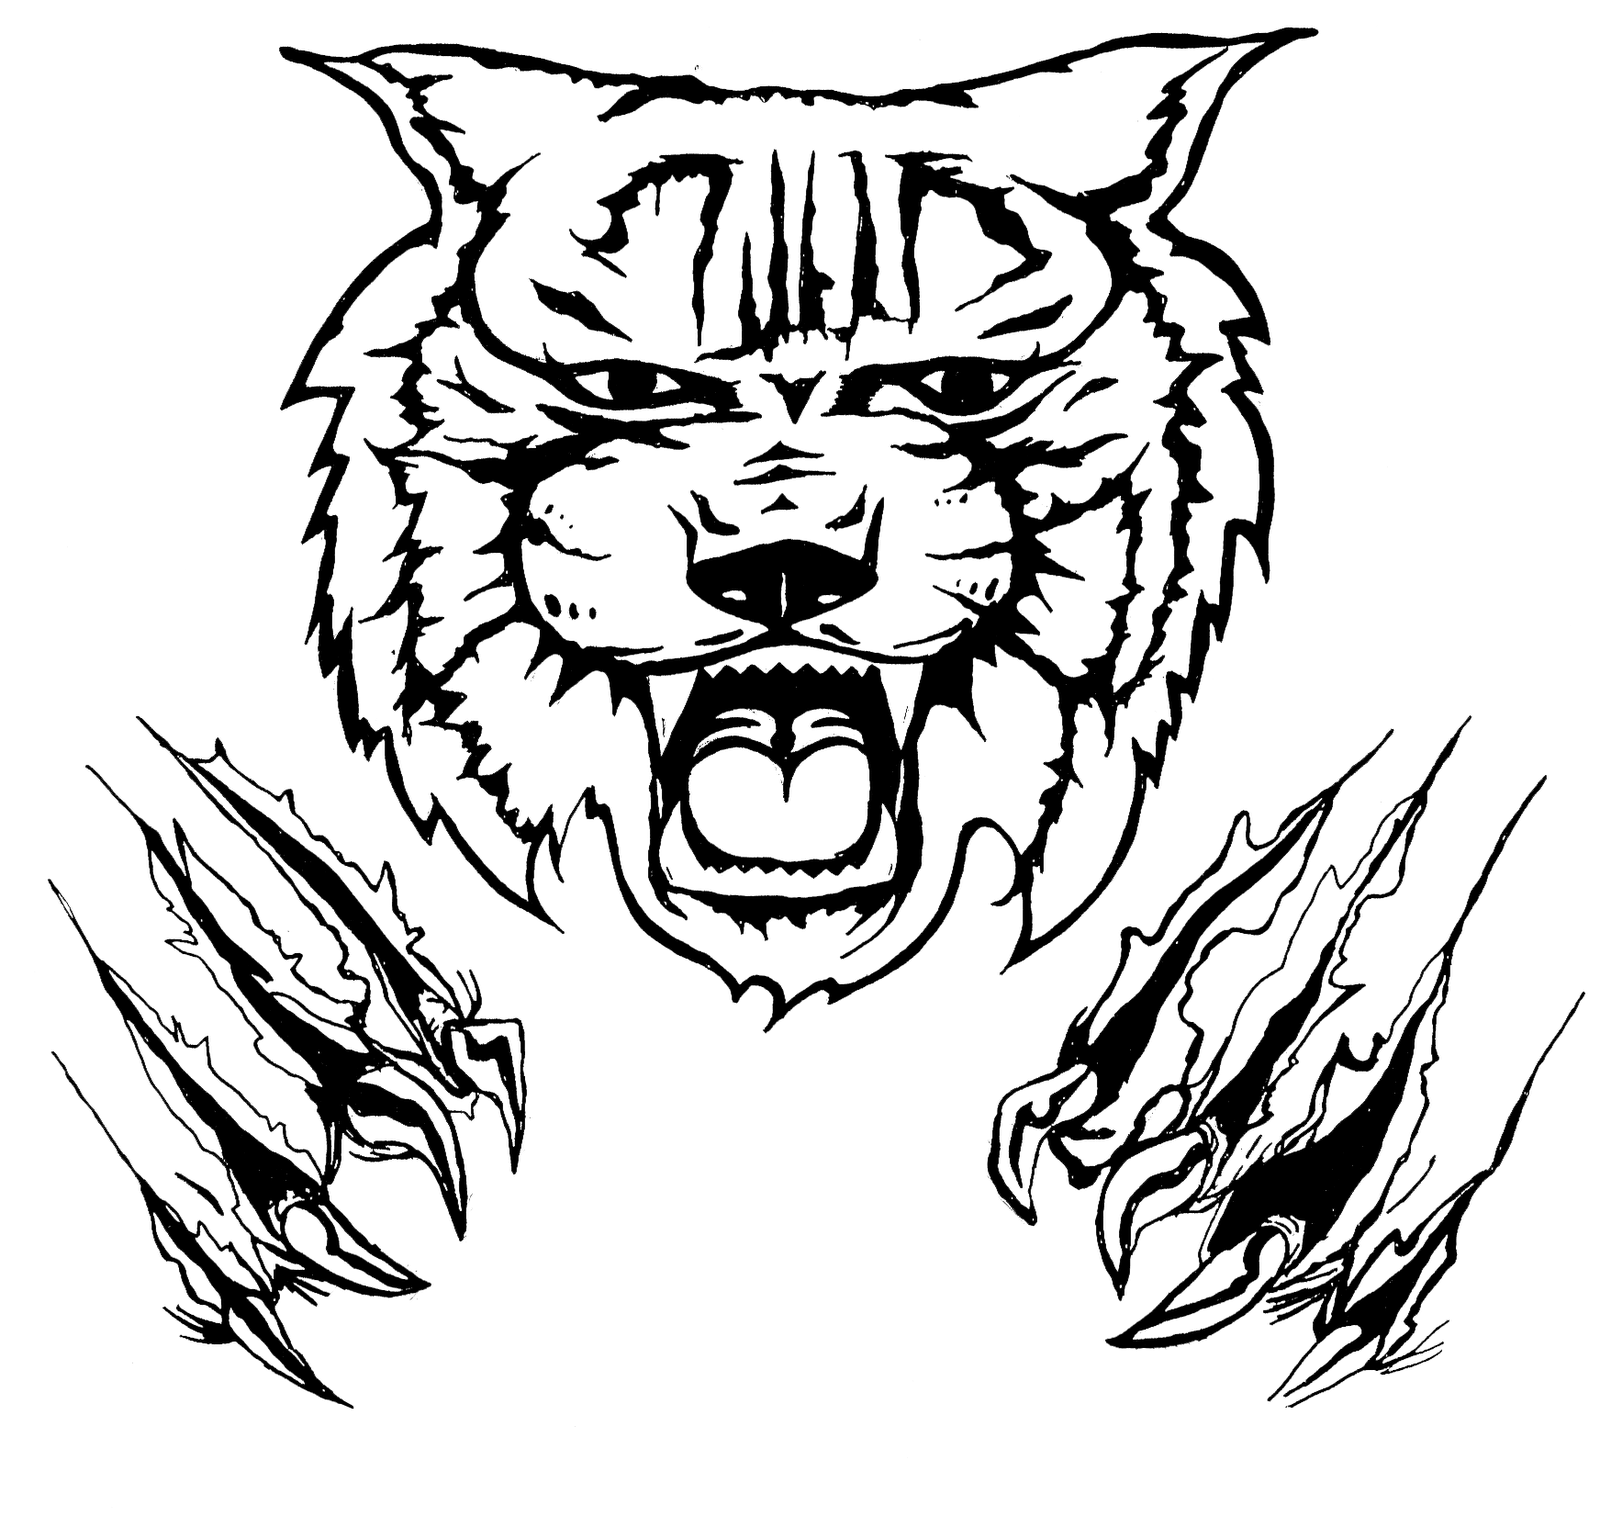 Wildcat Claw Logo http://artrageously.blogspot.com/2012/03/wildcat-shirt-design.html